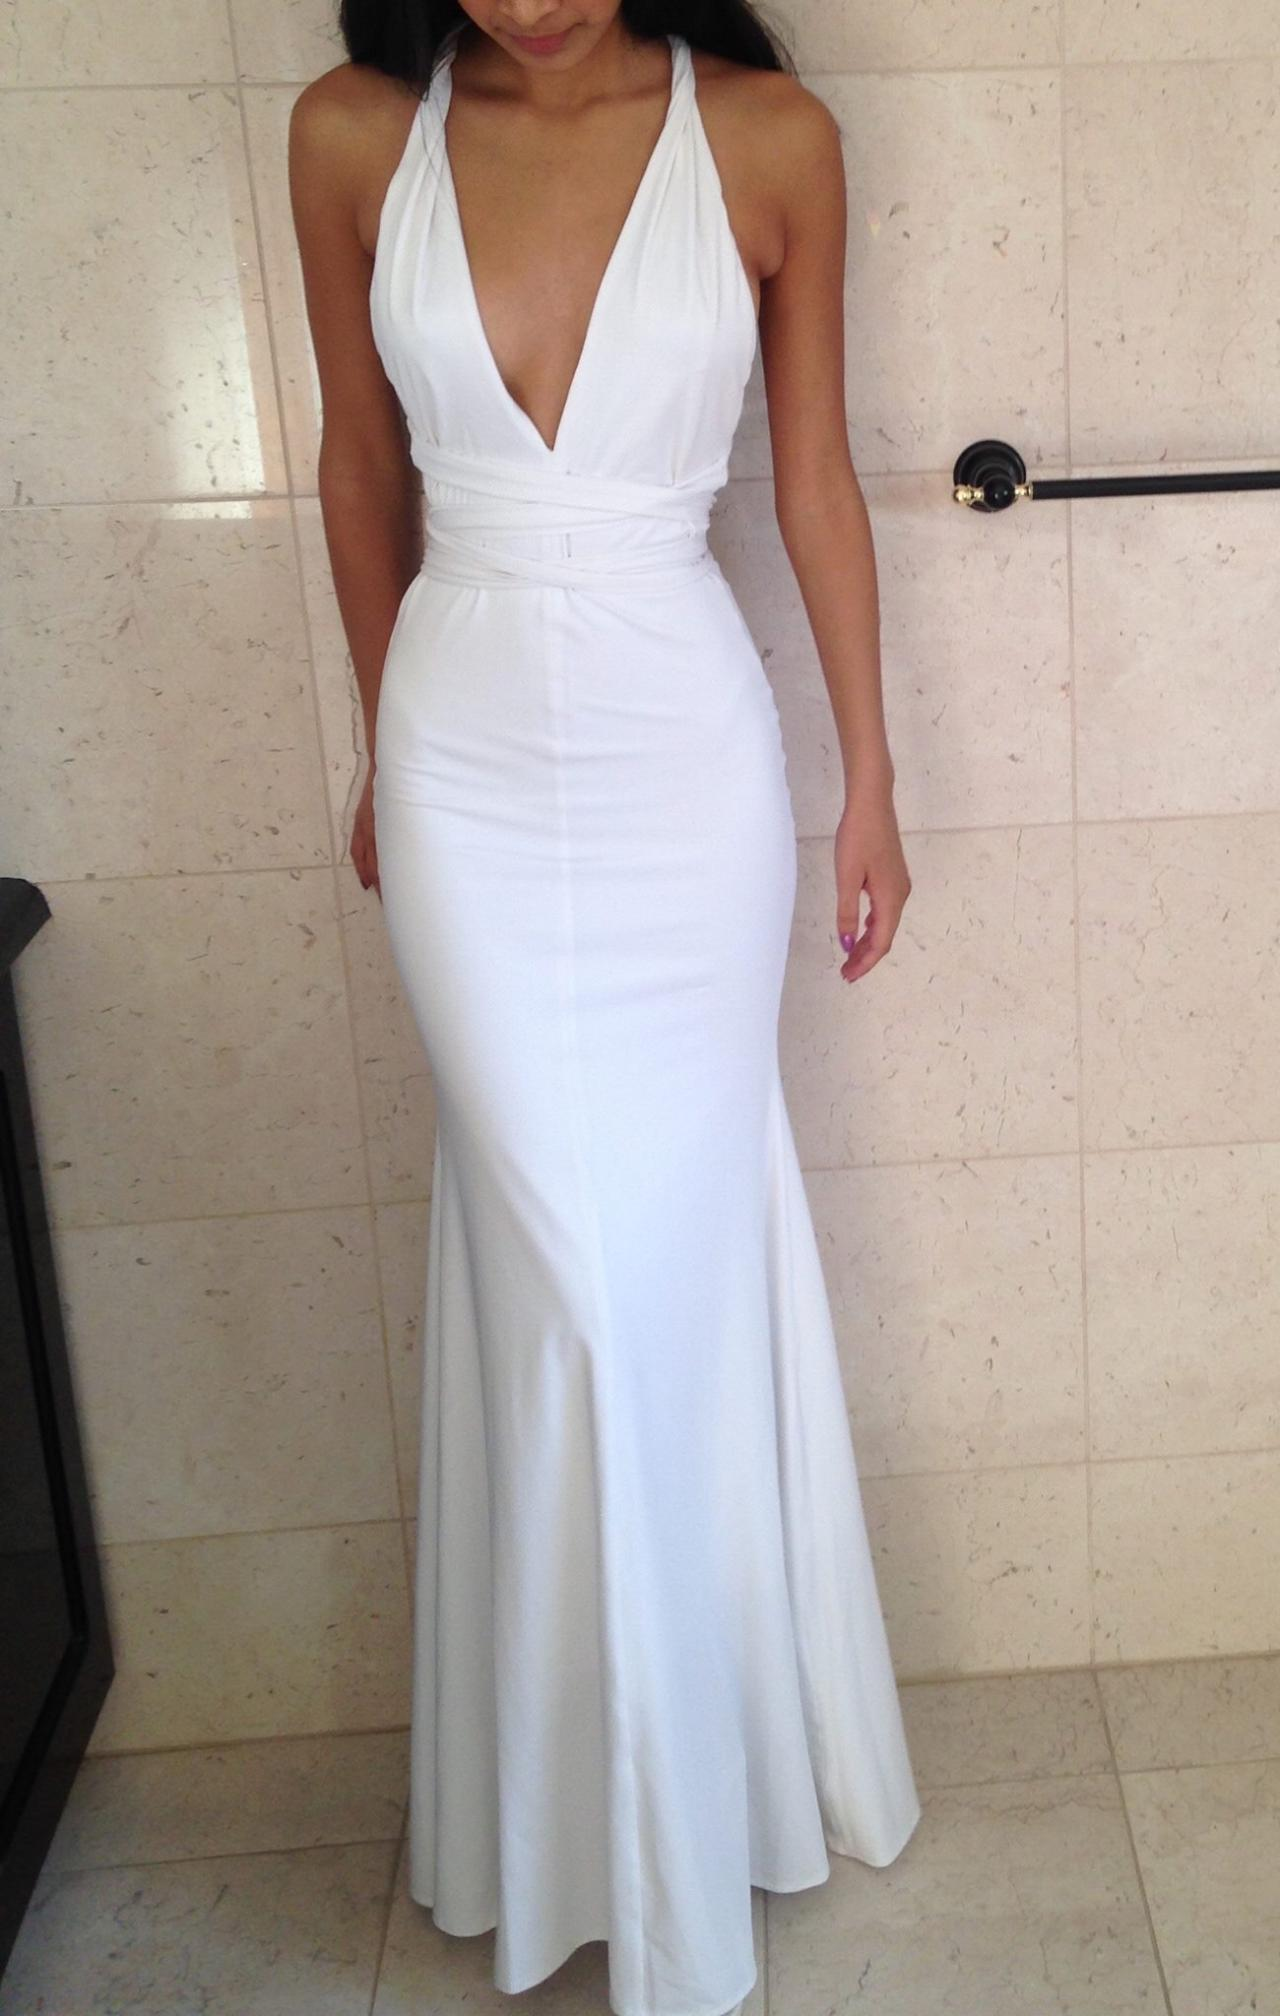 Charming Trumpet/Mermaid Halter White Satin 2020 Prom Dresses